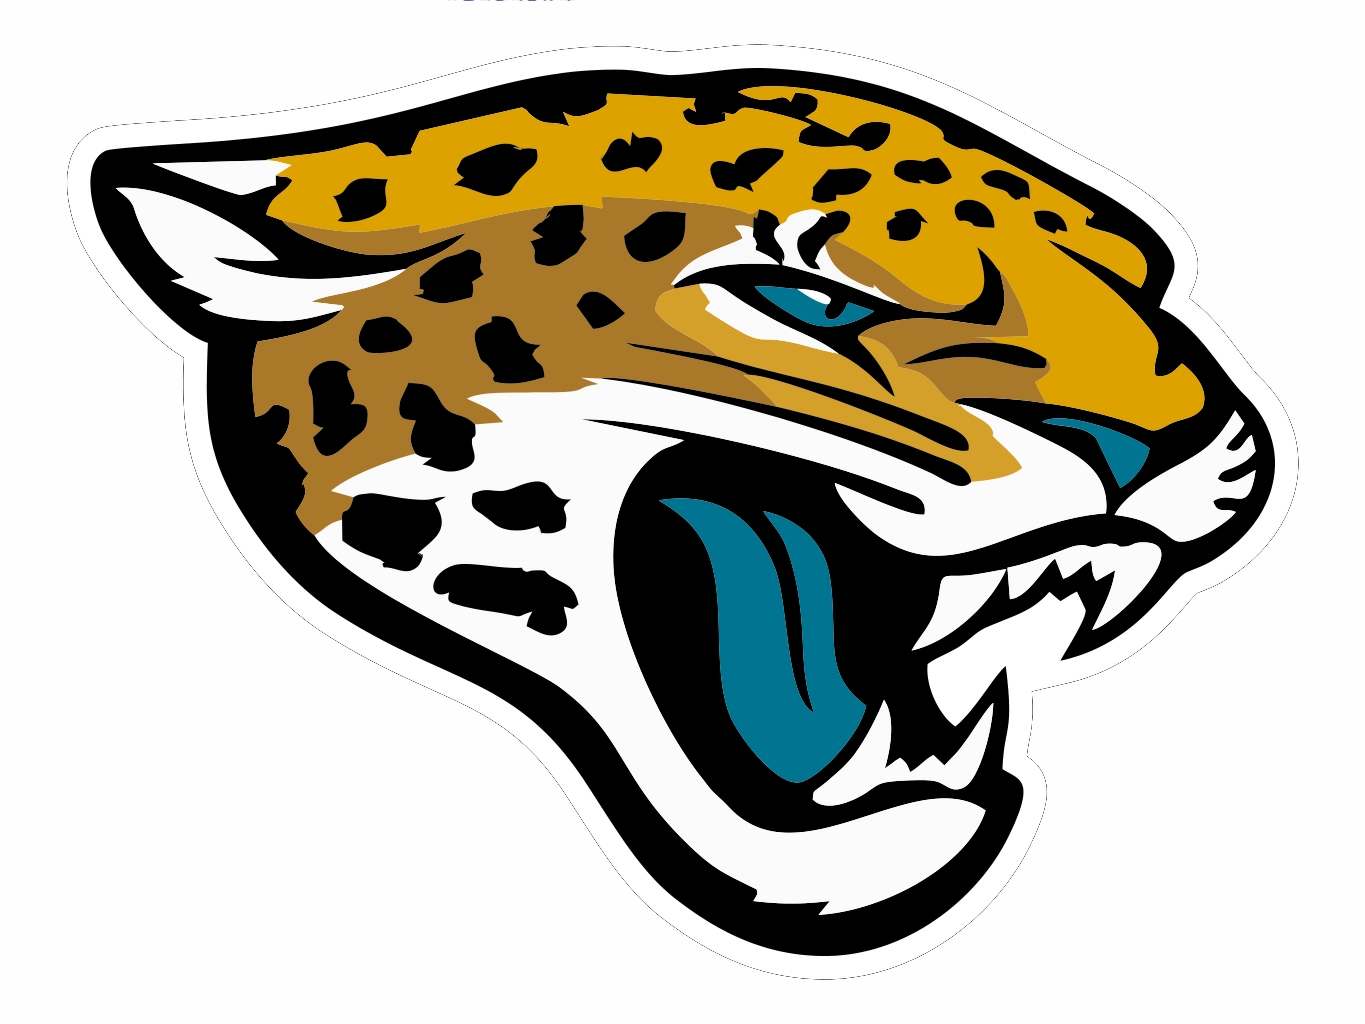 Distressed football outline clipart png stock Jacksonville Jaguars Cut | Free Images at Clker.com - vector clip ... png stock